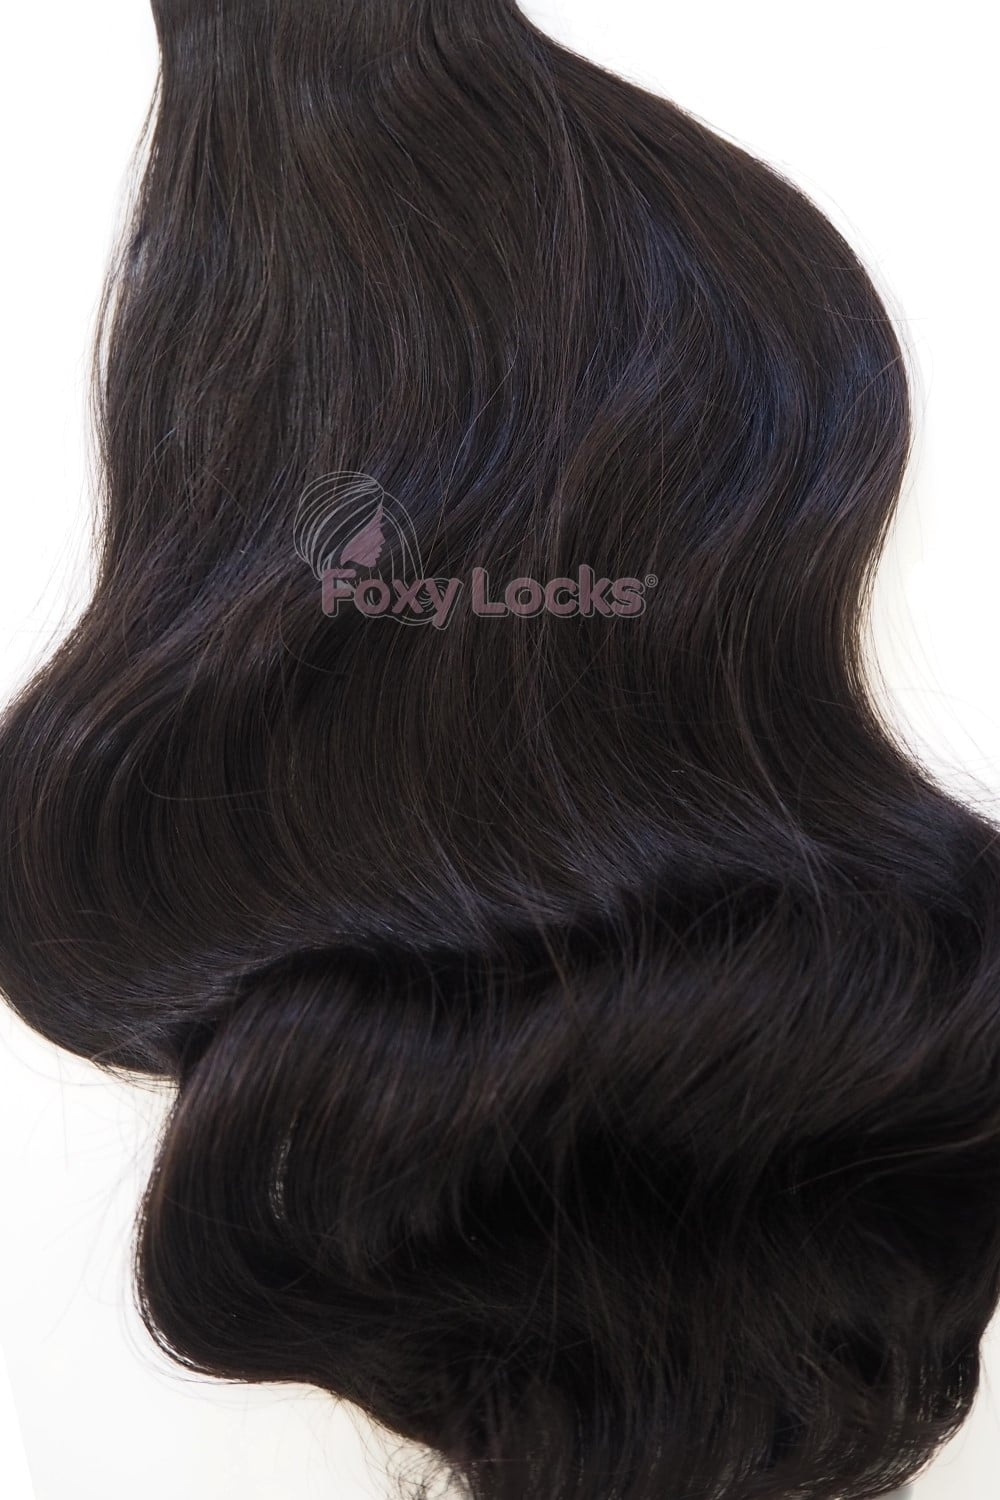 Brown black 1b luxurious 24 clip in human hair extensions 280g brown black luxurious 24 clip in human hair extensions 280g pmusecretfo Image collections